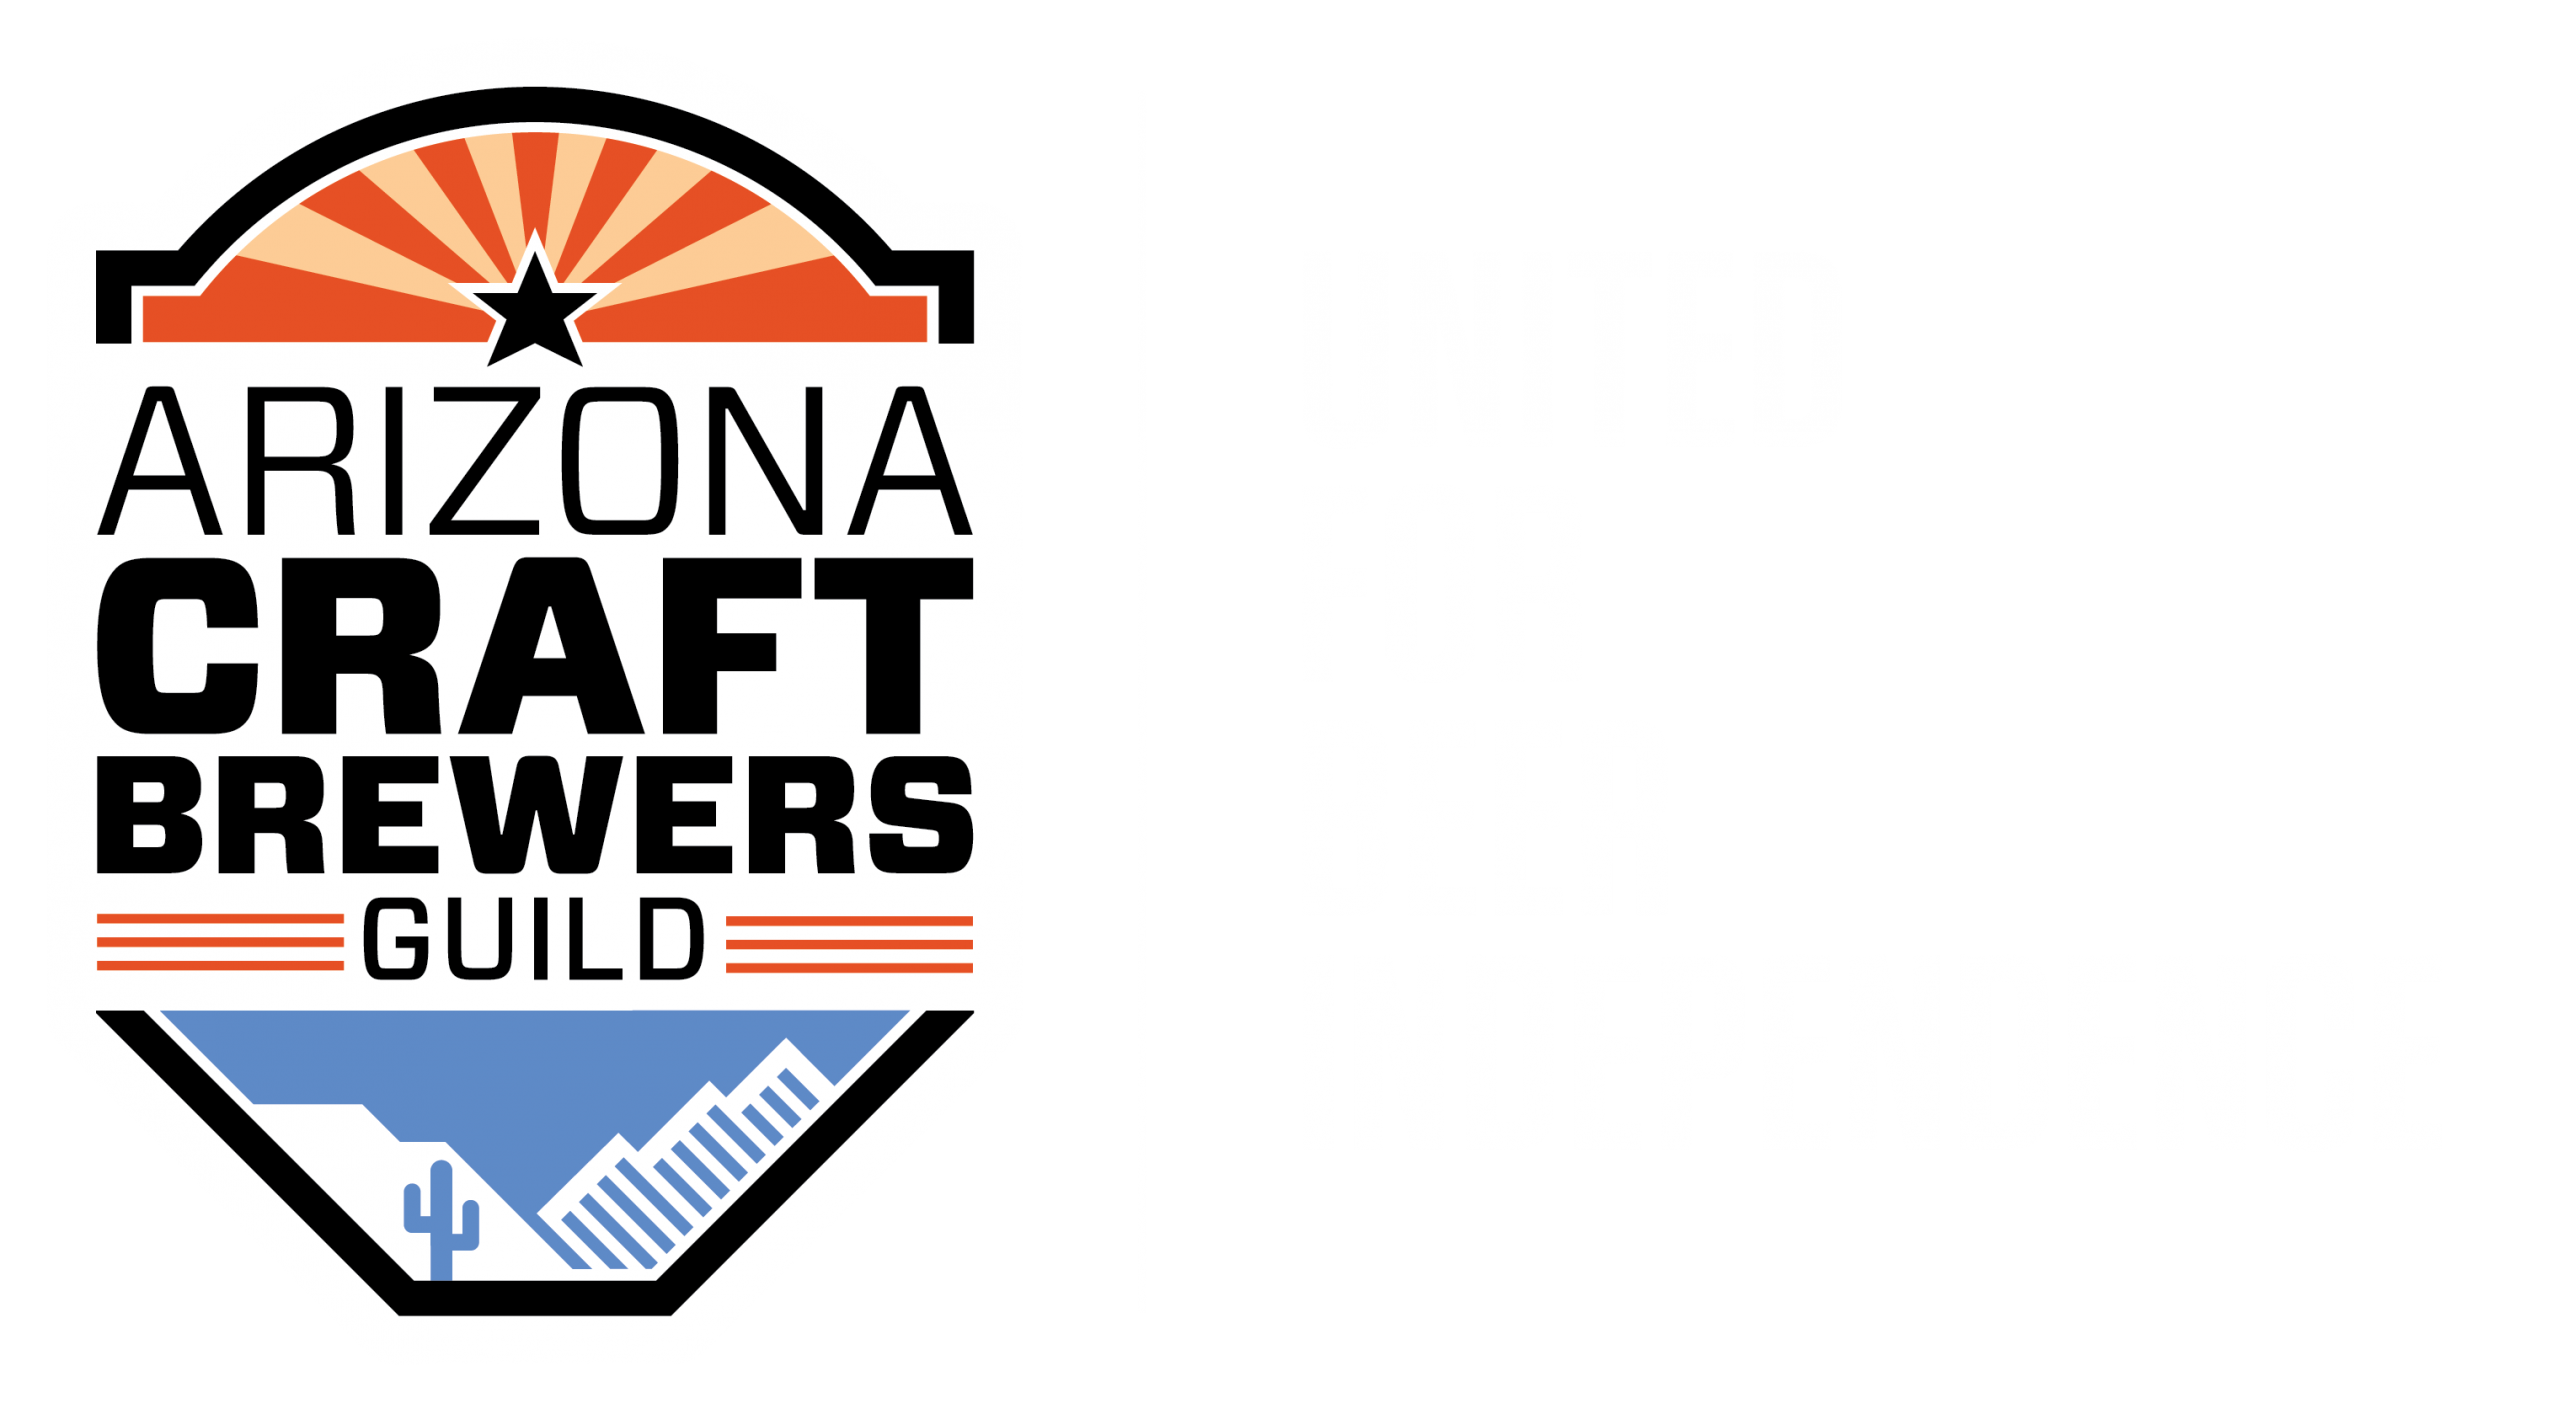 Matthew Burke | Arizona Craft Brewers Guild